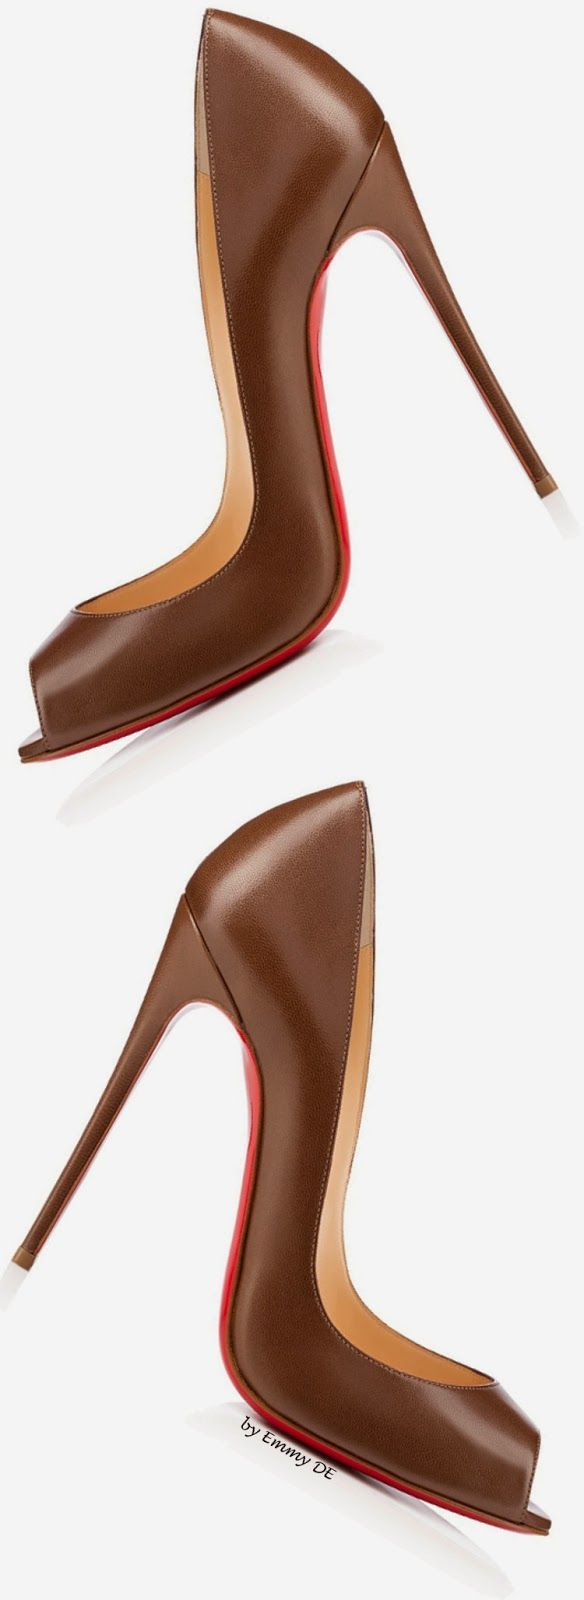 best loved 3f56e 83371 Christian Louboutin | @ brown | new york fashion | Shoes ...